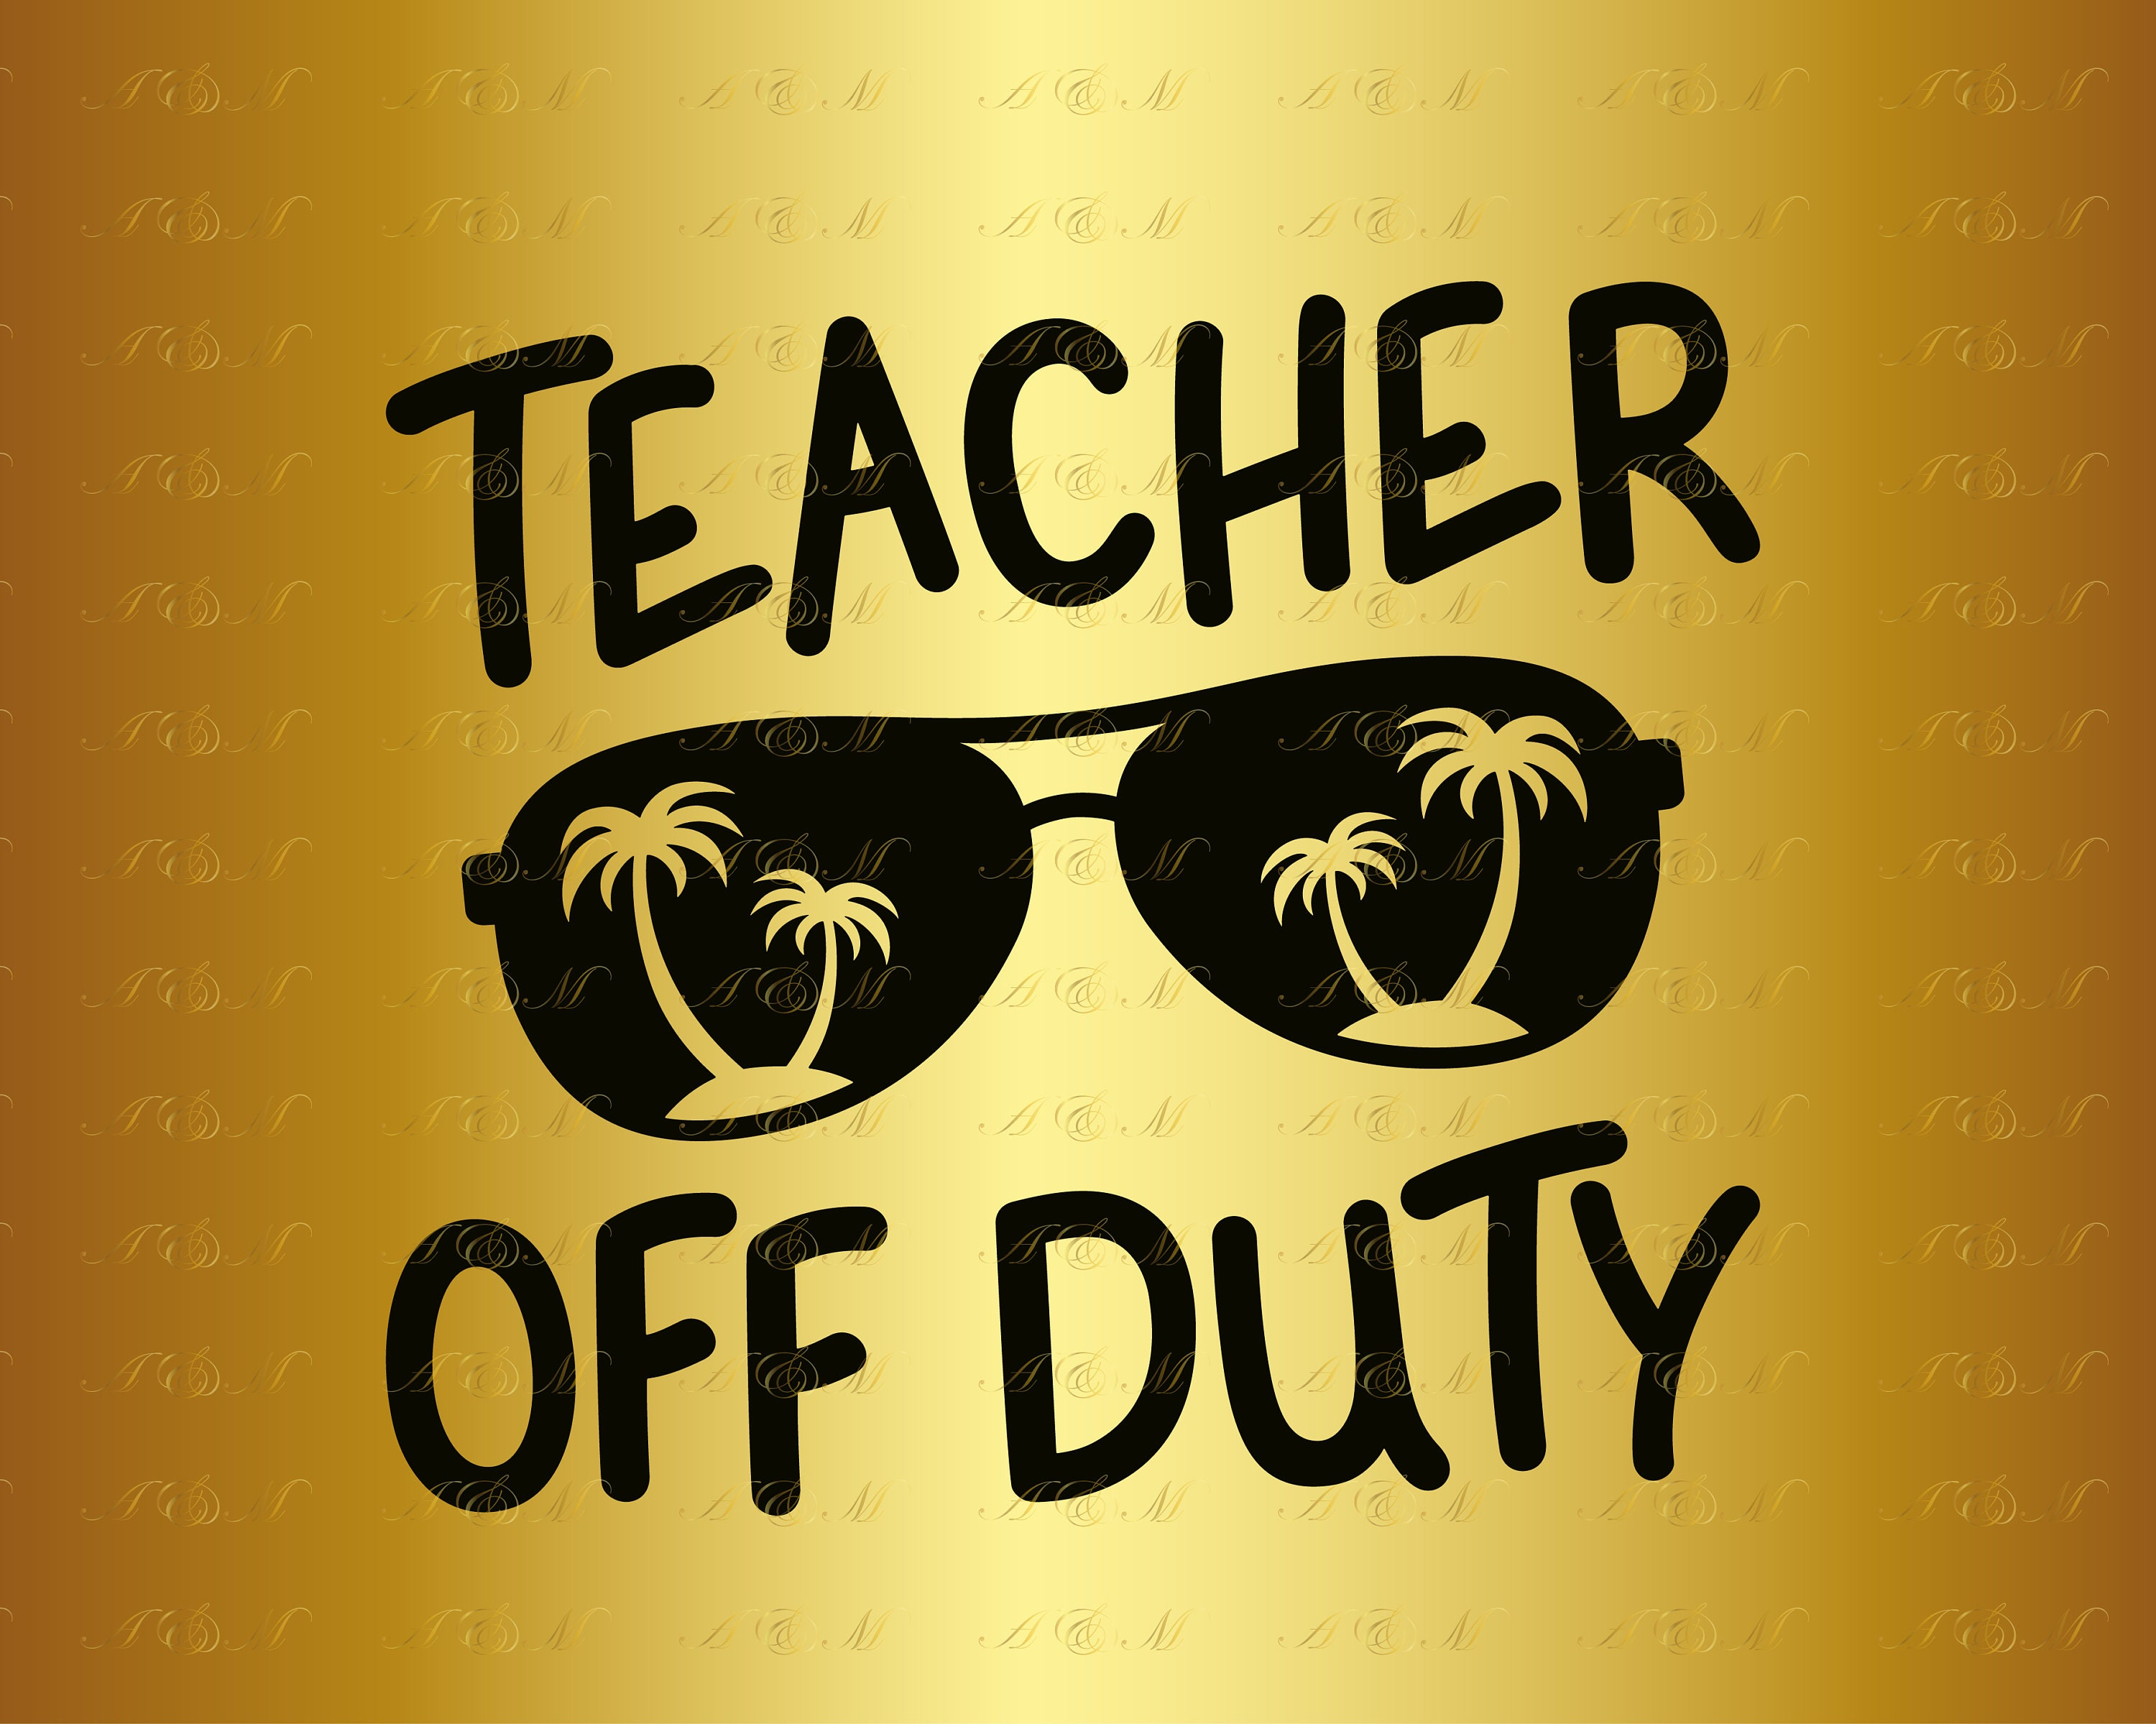 60% OFF Teacher Off Duty SVG Funny Teacher Decal Palm Tree Clipart  Sunglasses Silhouette Beach Holidays School Png Eps Dxf Ai Vinyl Cut File